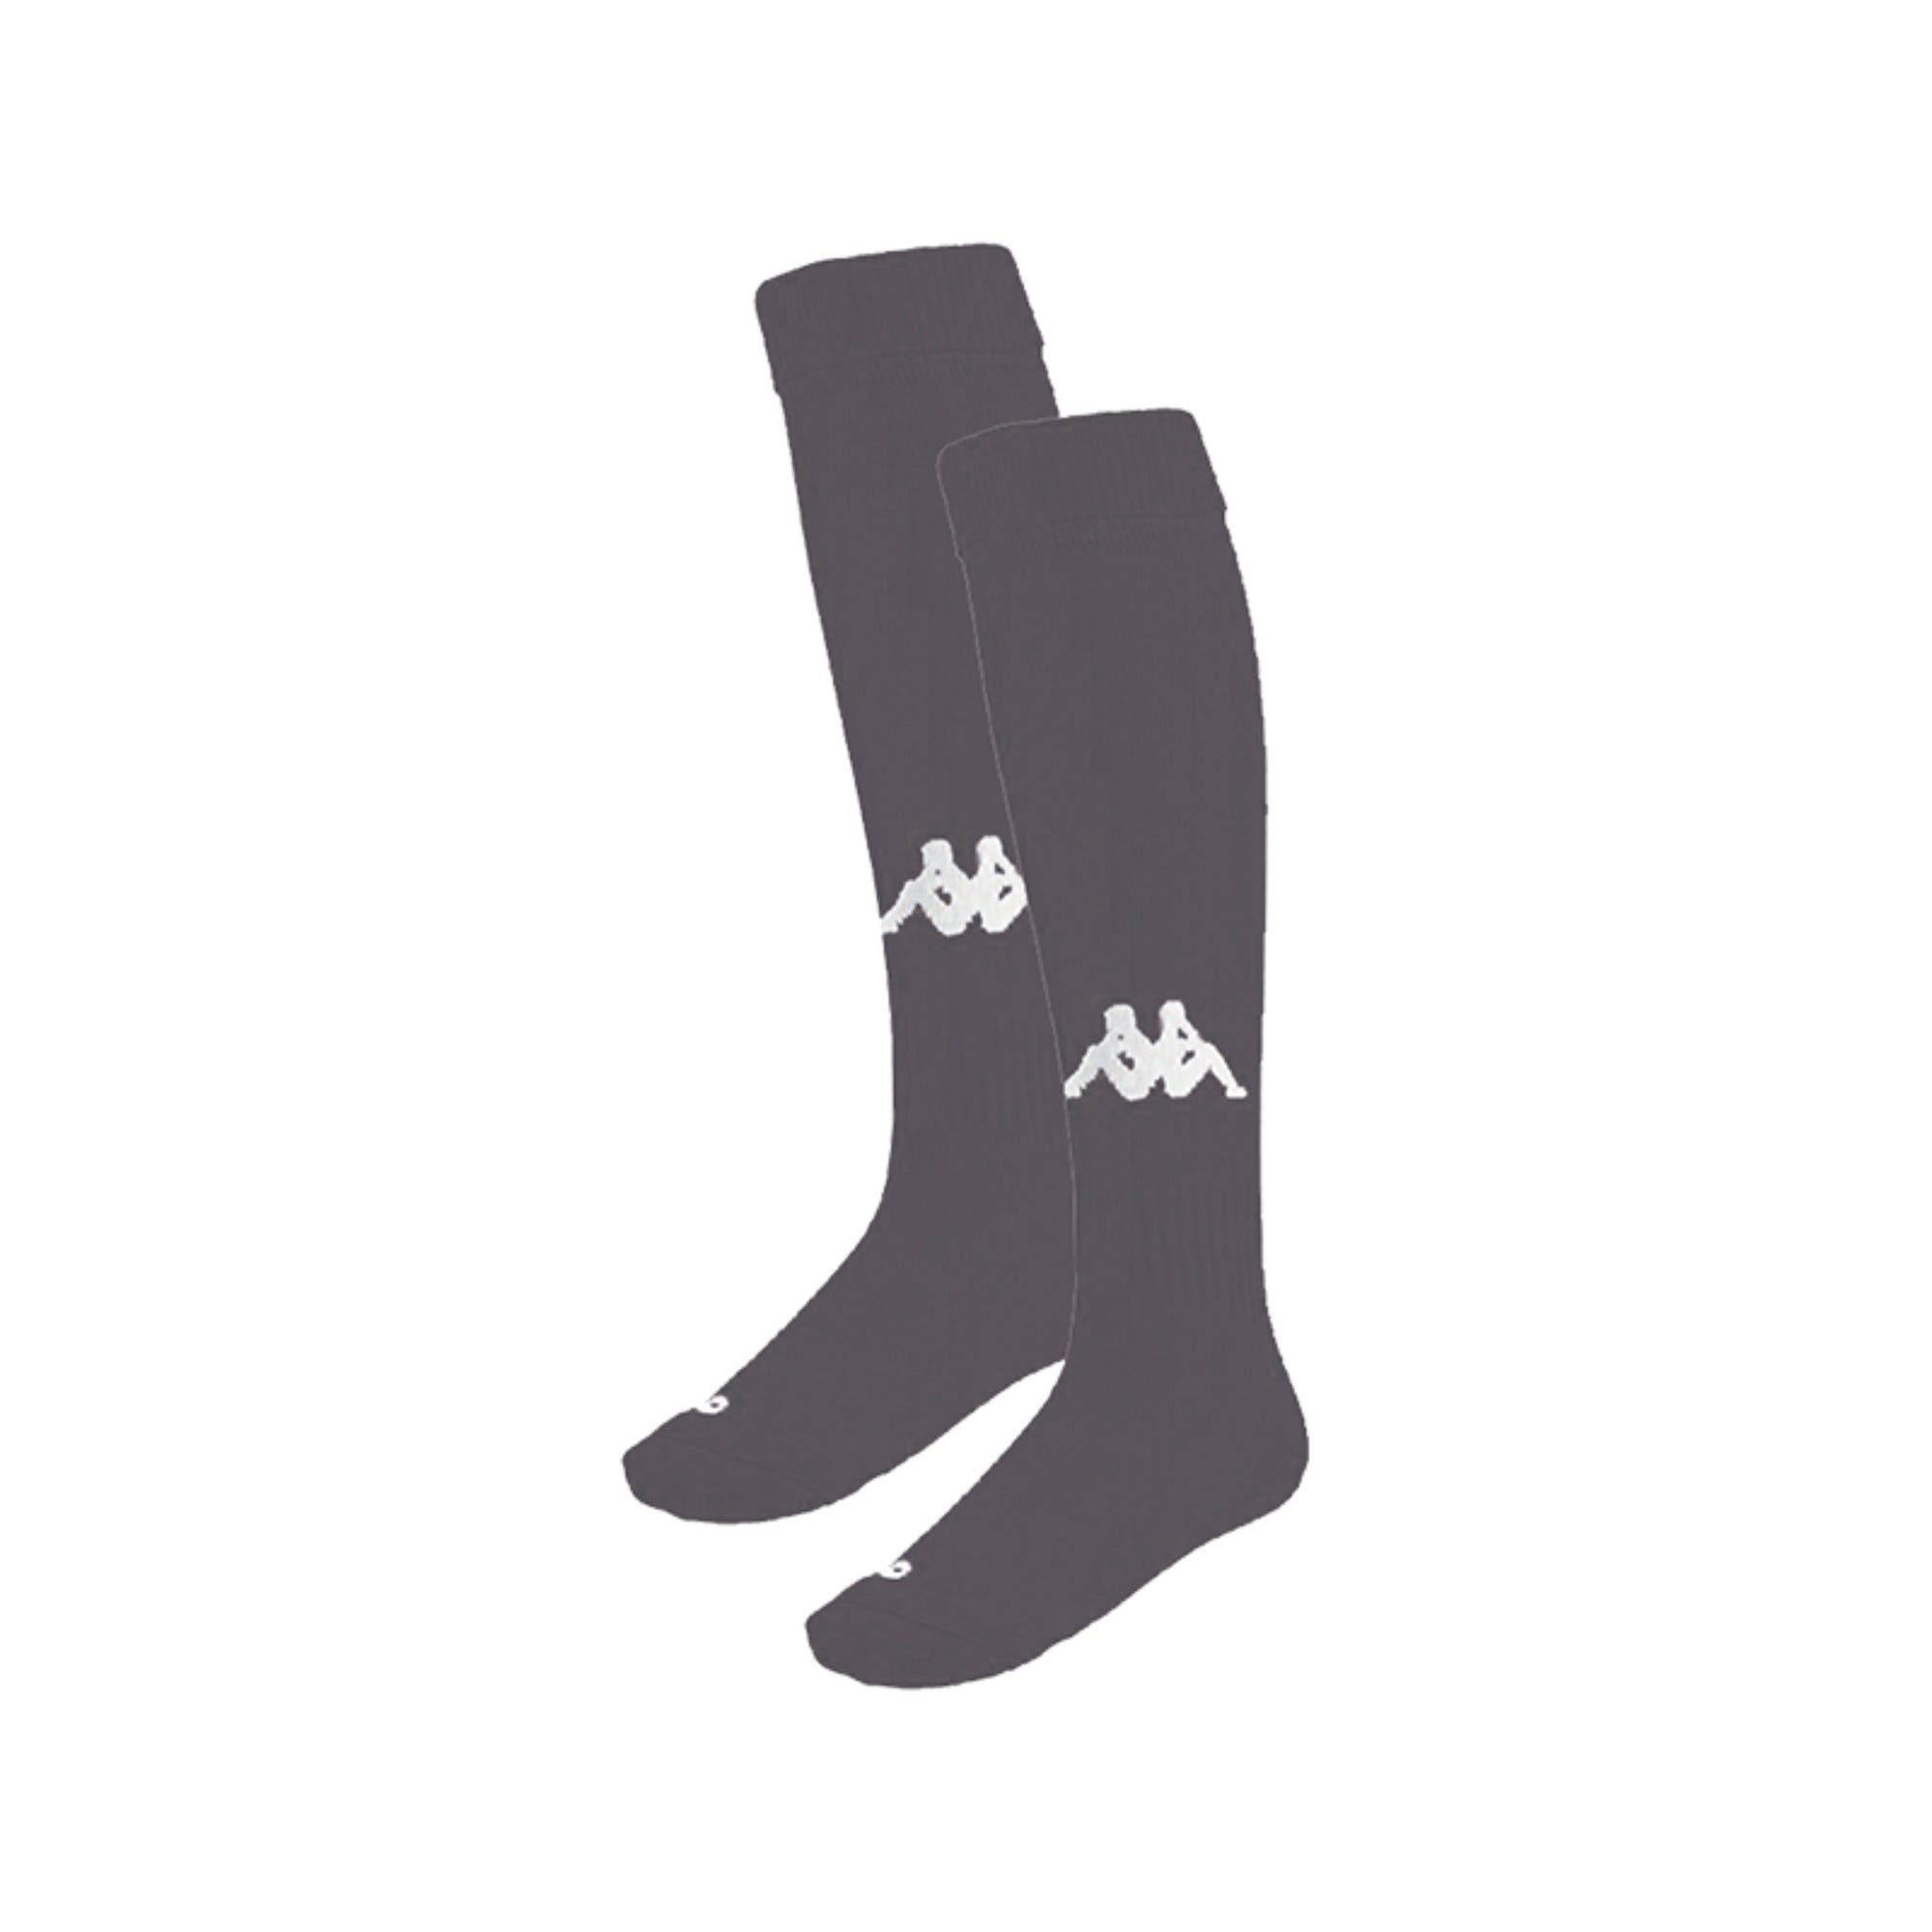 Kappa Penao socks in smoke (grey) with knitted white Omini in the front shin area